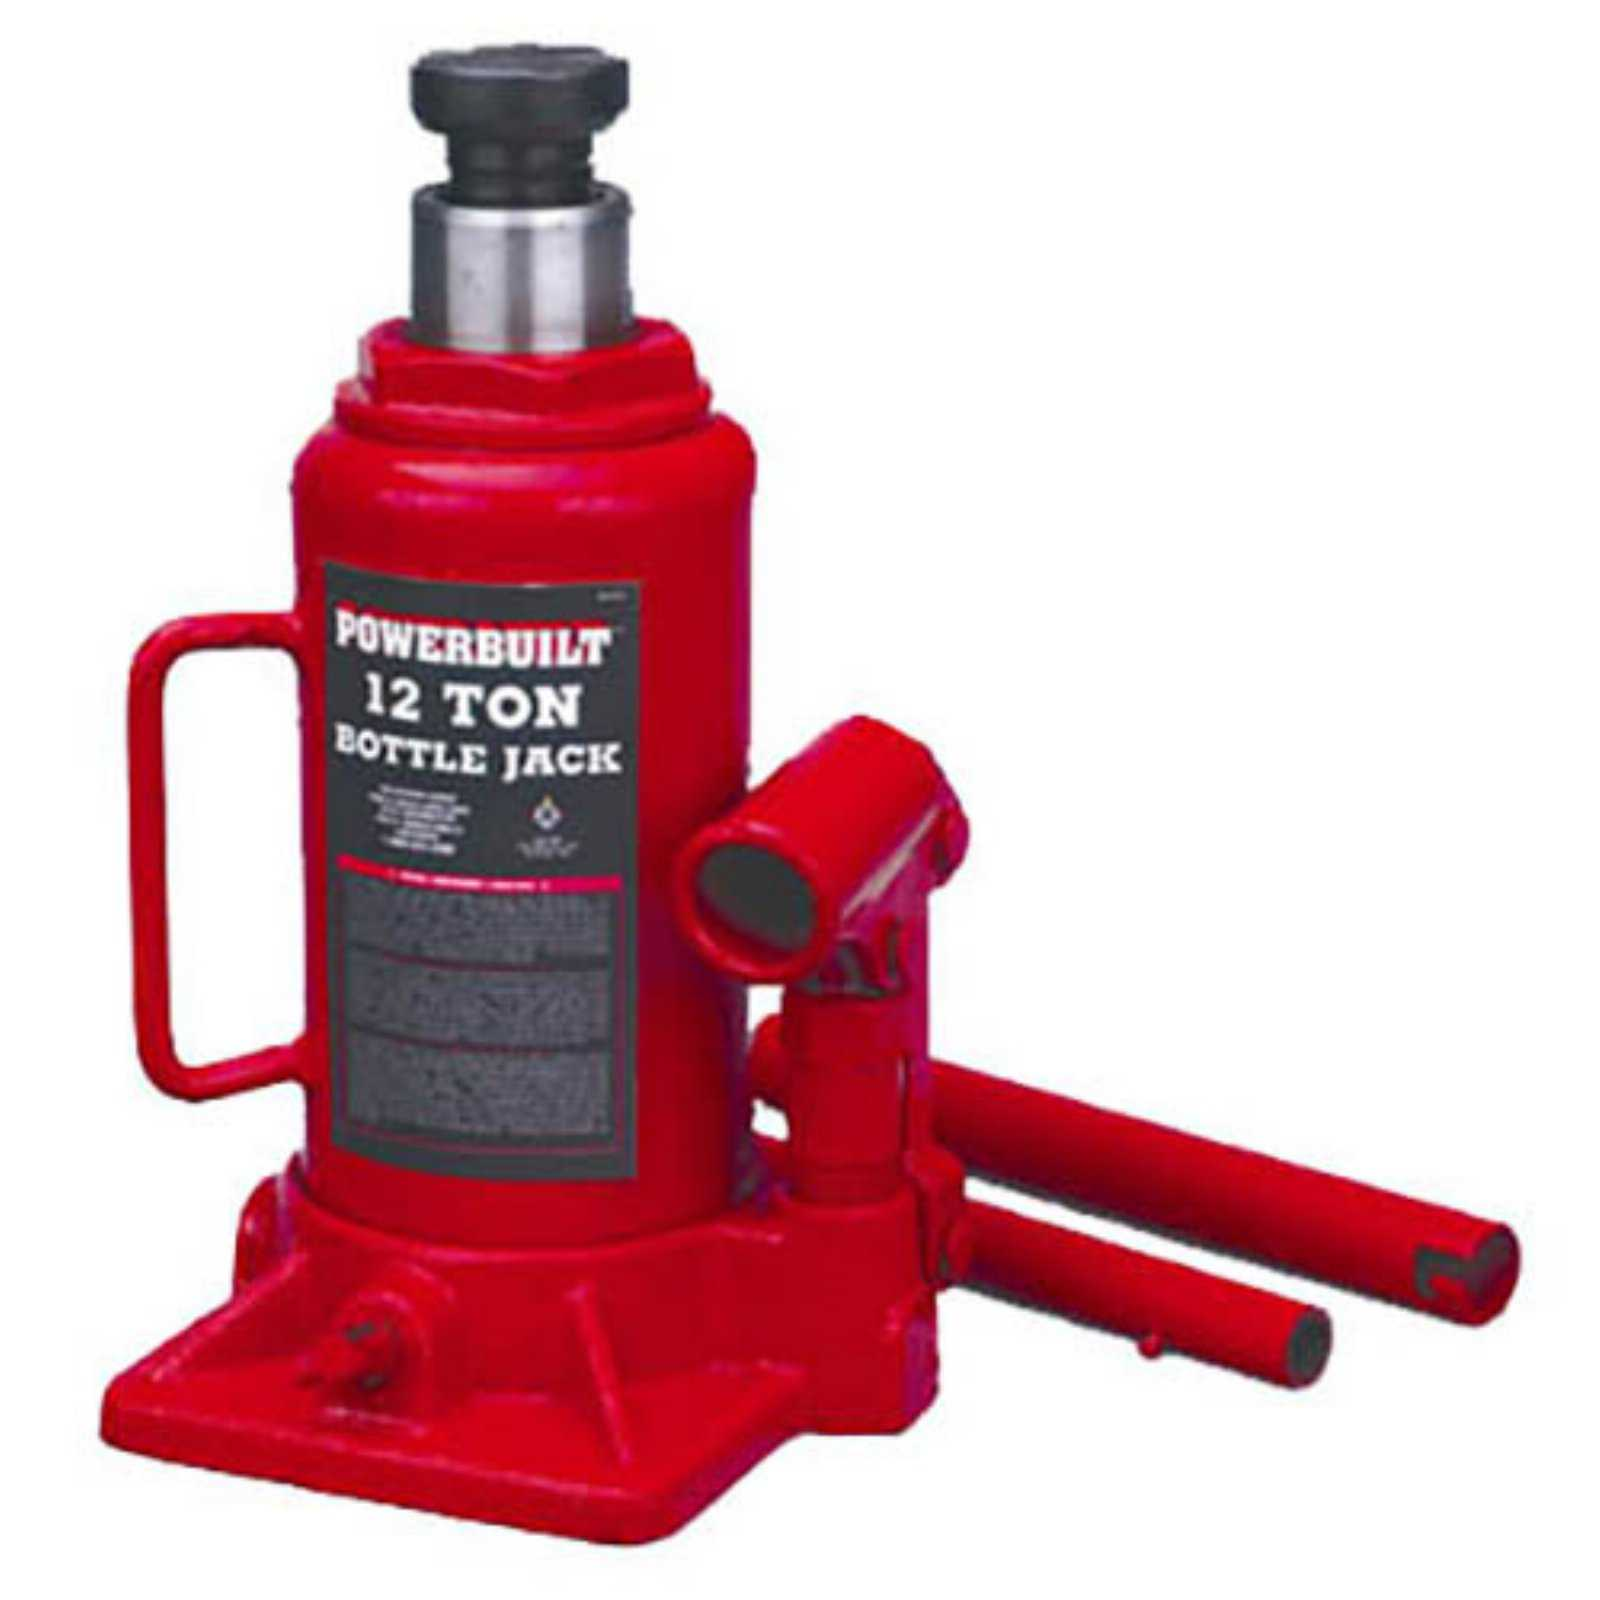 Powerbuilt 12 Ton Bottle Jack